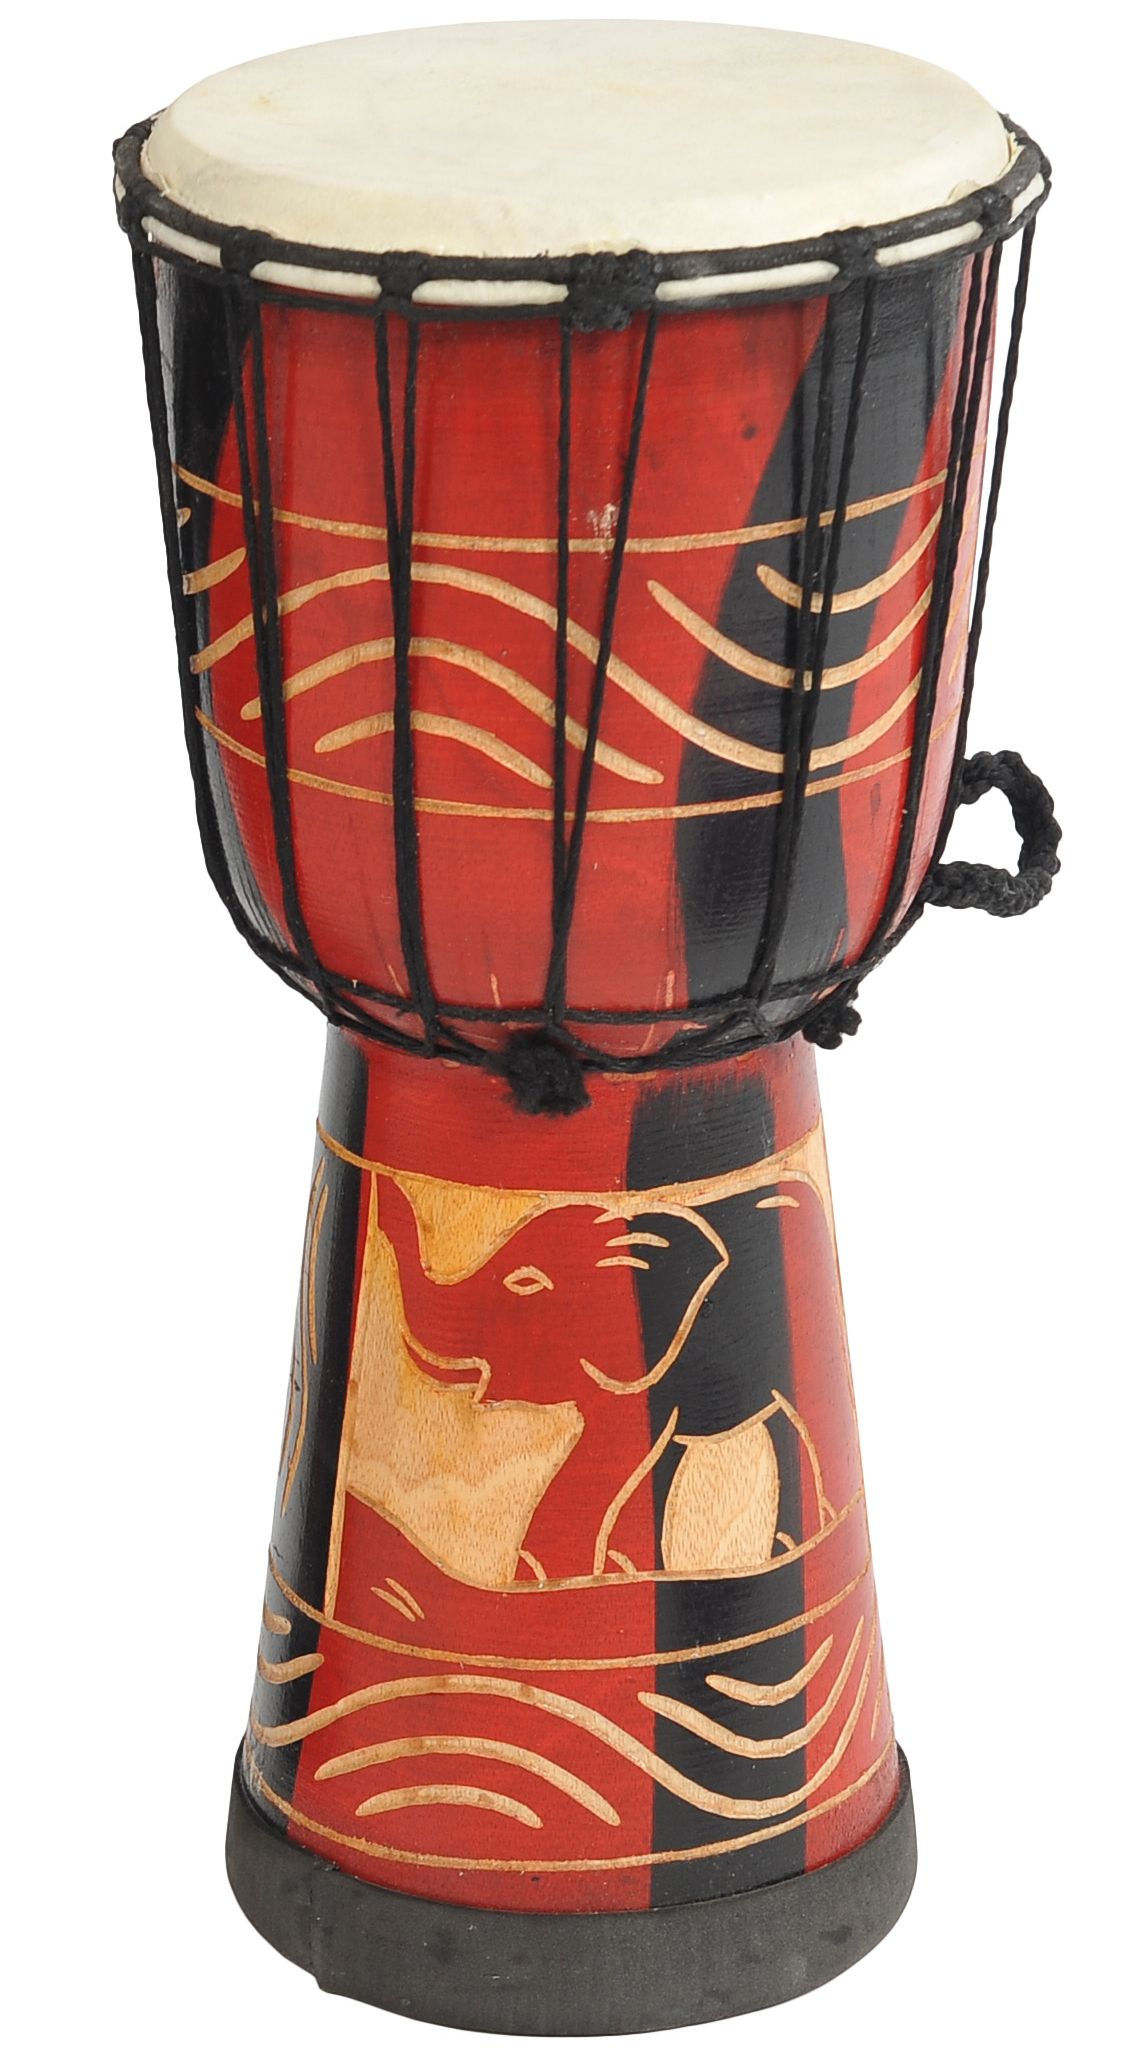 Item The djembe DRUM is 40 cm from the e-djembe